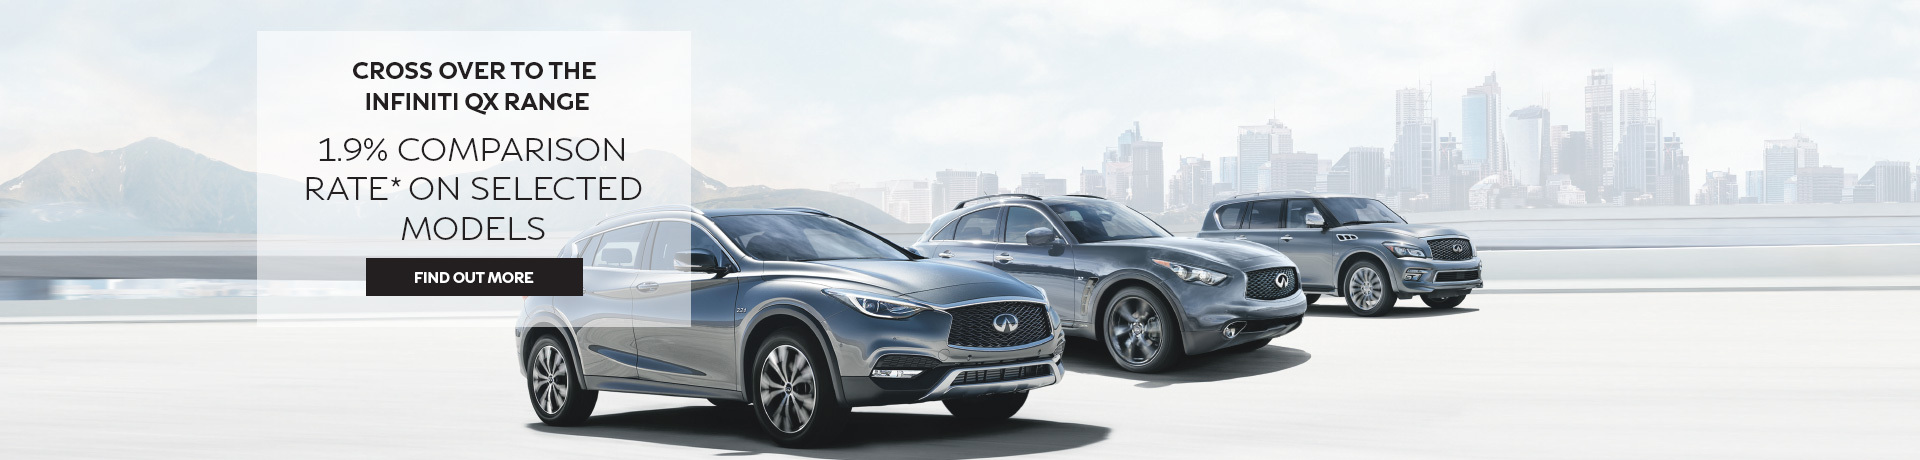 Infiniti - National Offer - 1.9% comparison rate